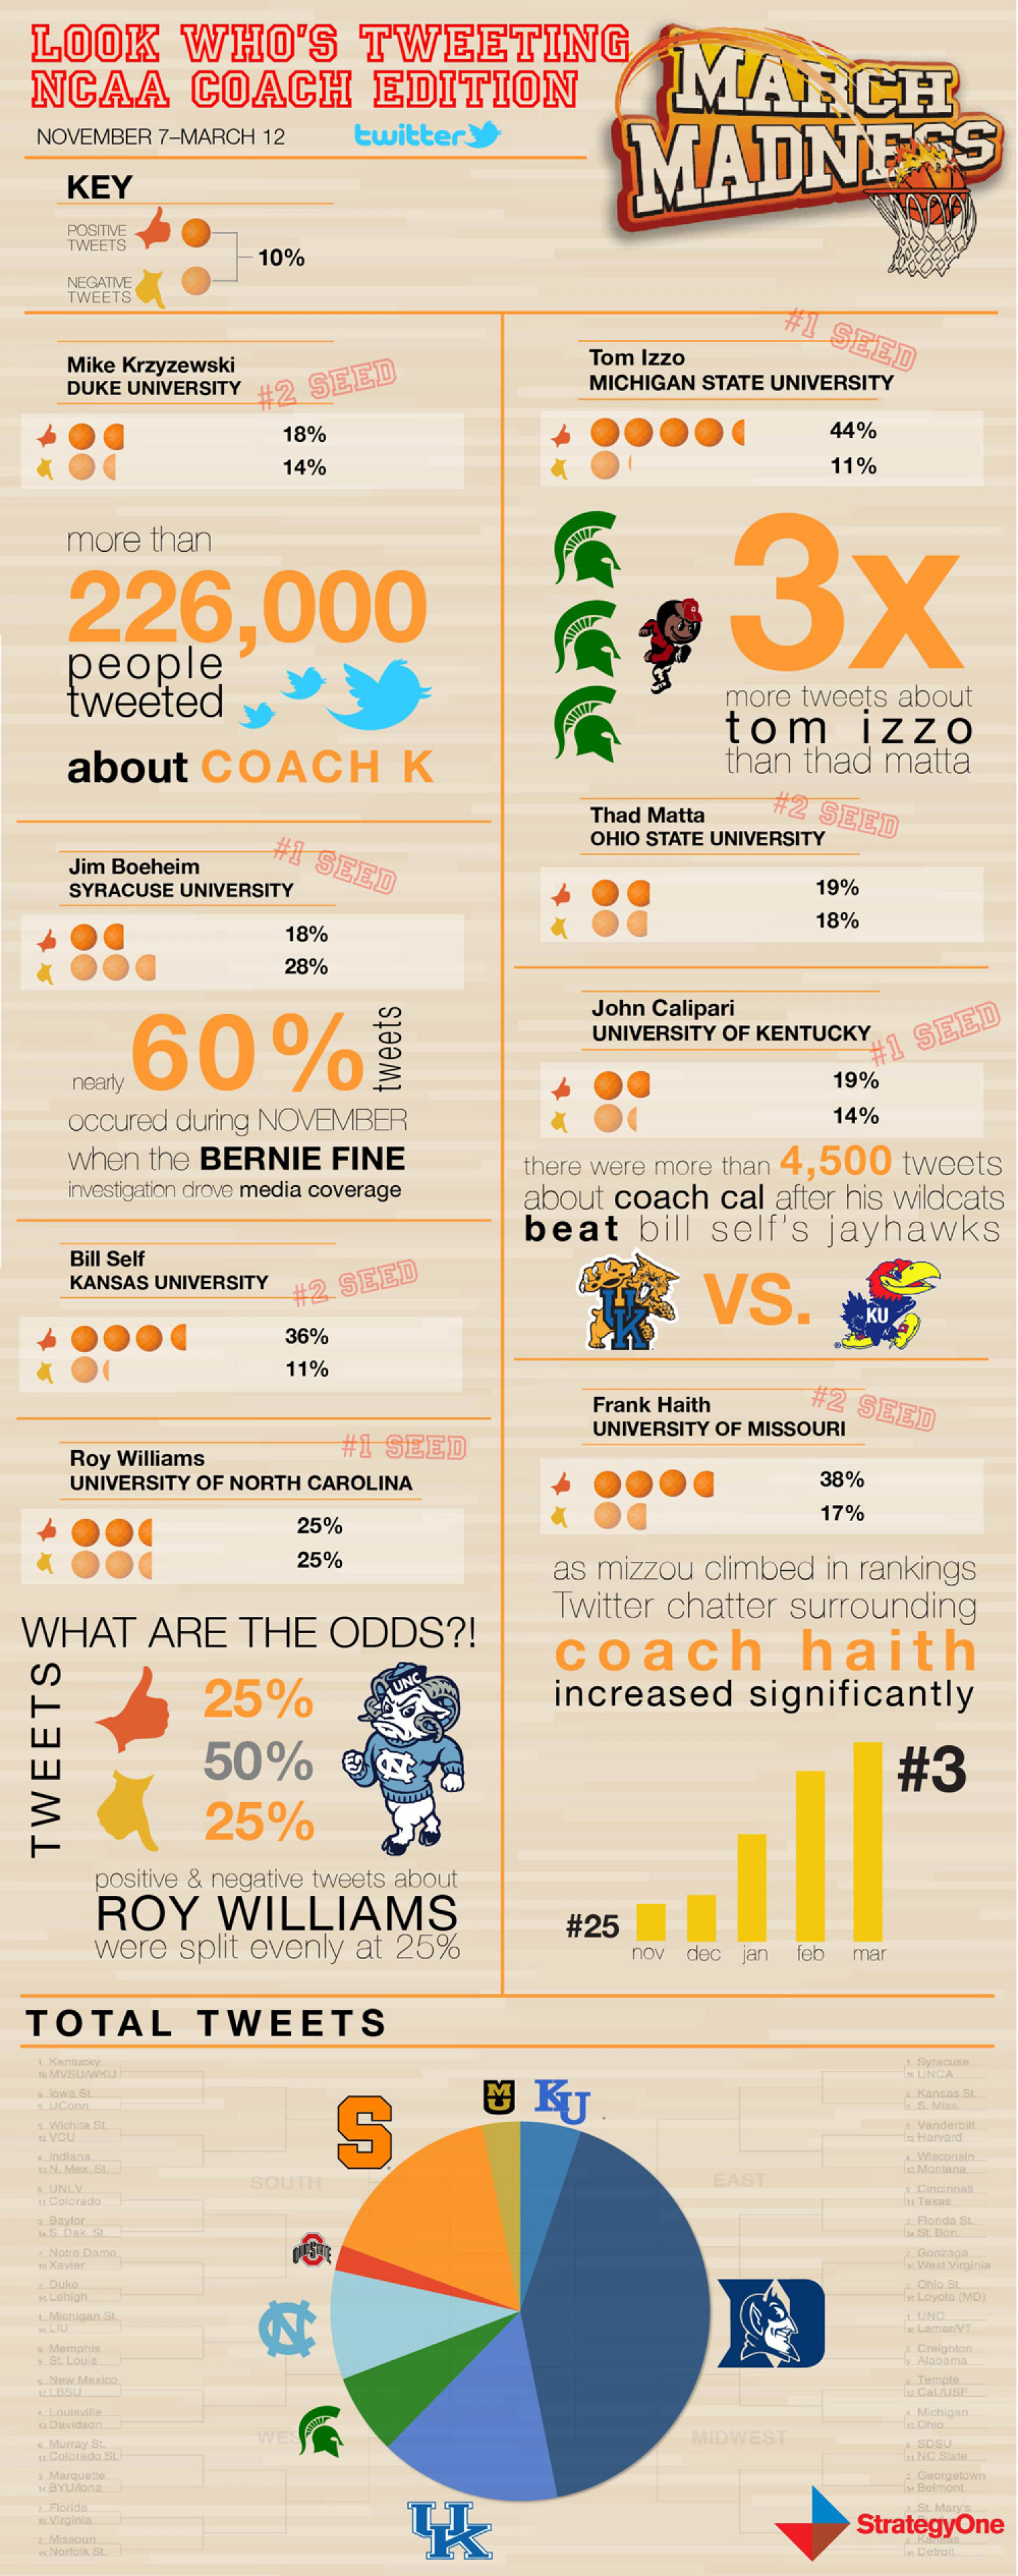 Look Who's Tweeting: NCAA Coach Edition Infographic